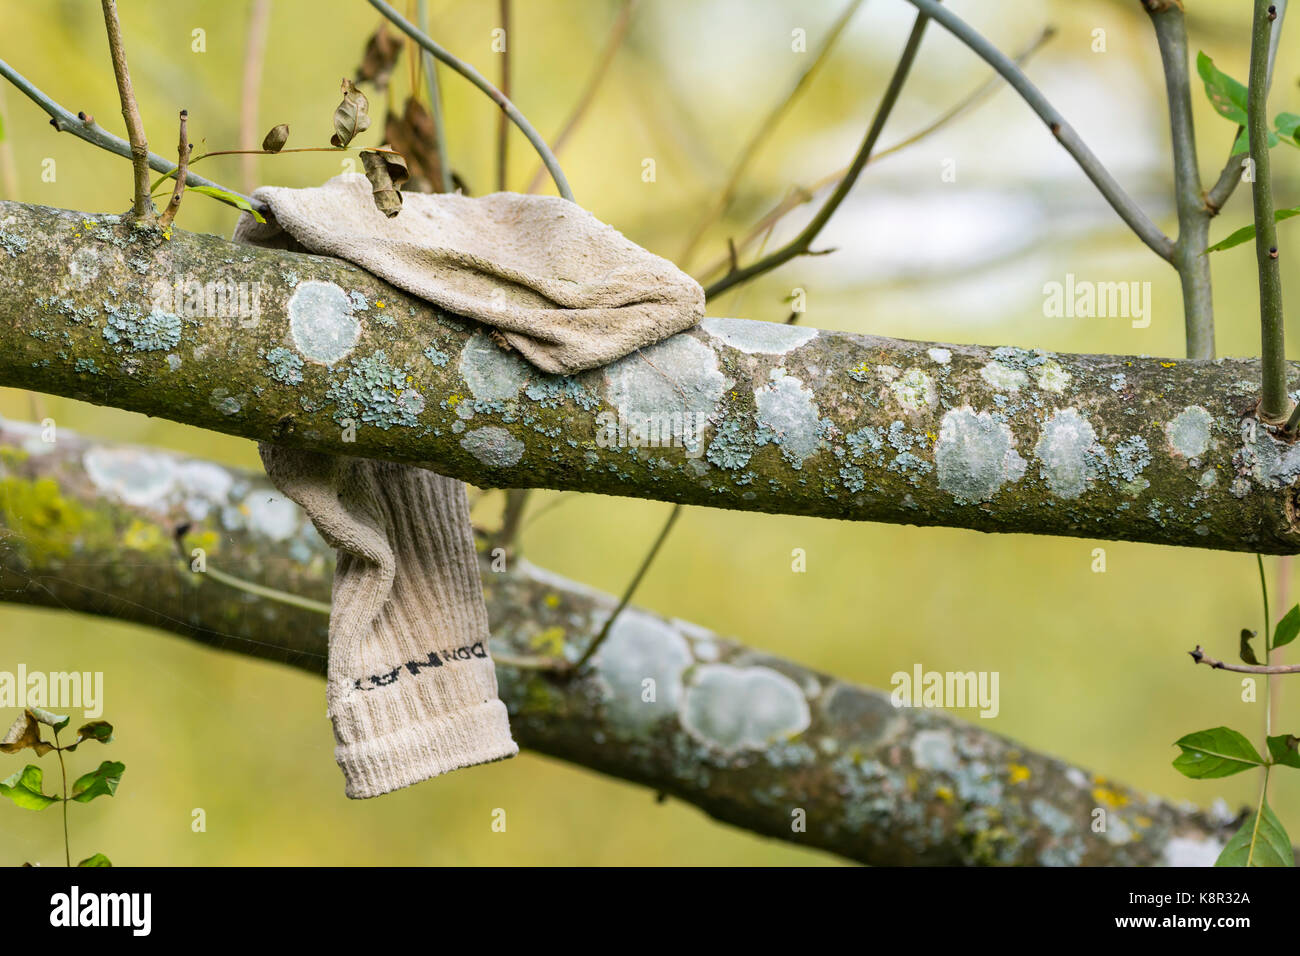 Lost sock hanging over the branch of a tree. - Stock Image